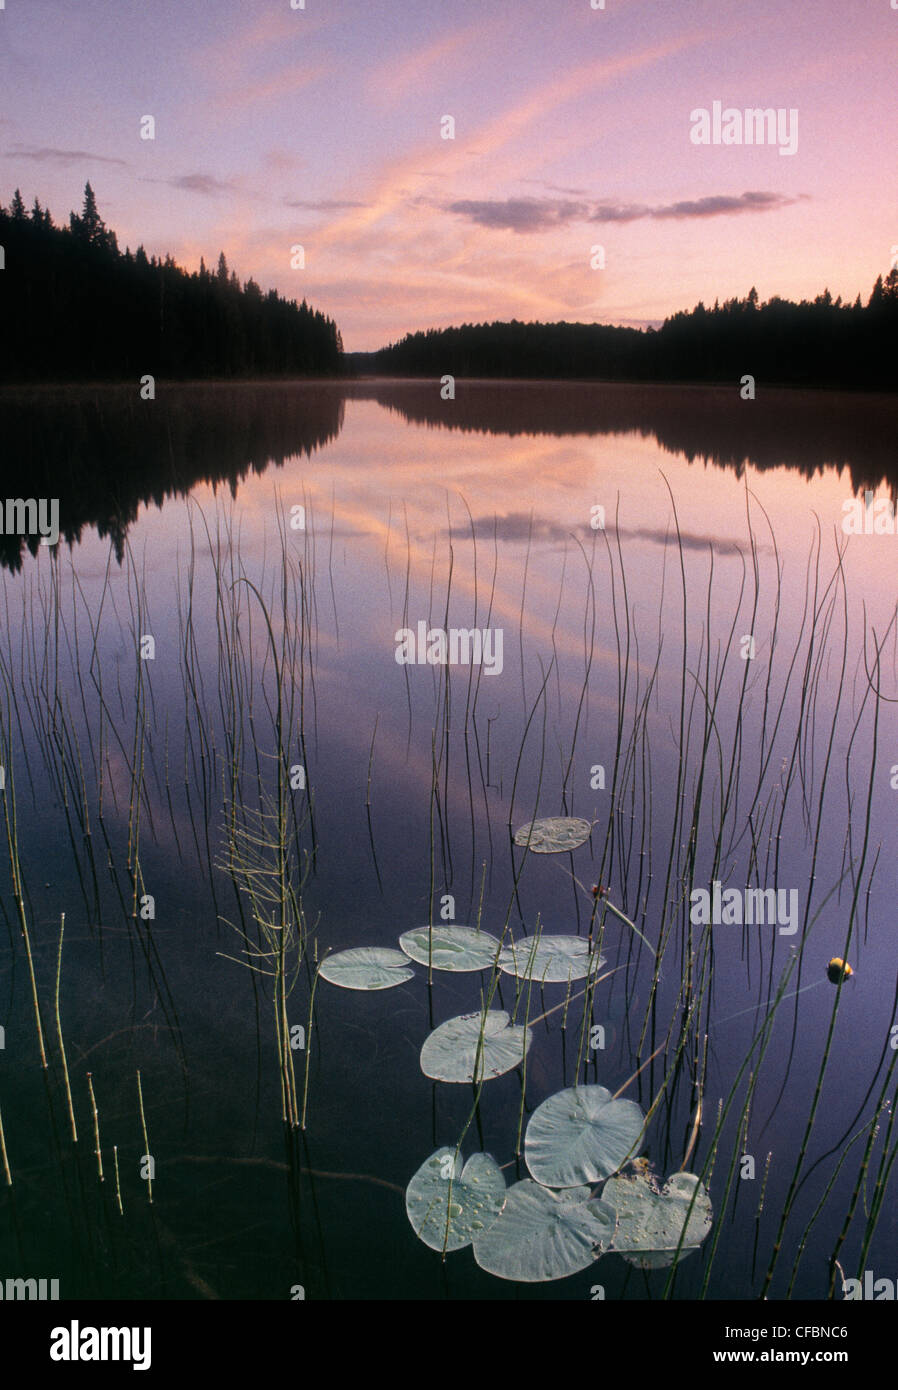 Two Mile Lake, Duck Mountain Provincial Park, Manitoba, Canada - Stock Image